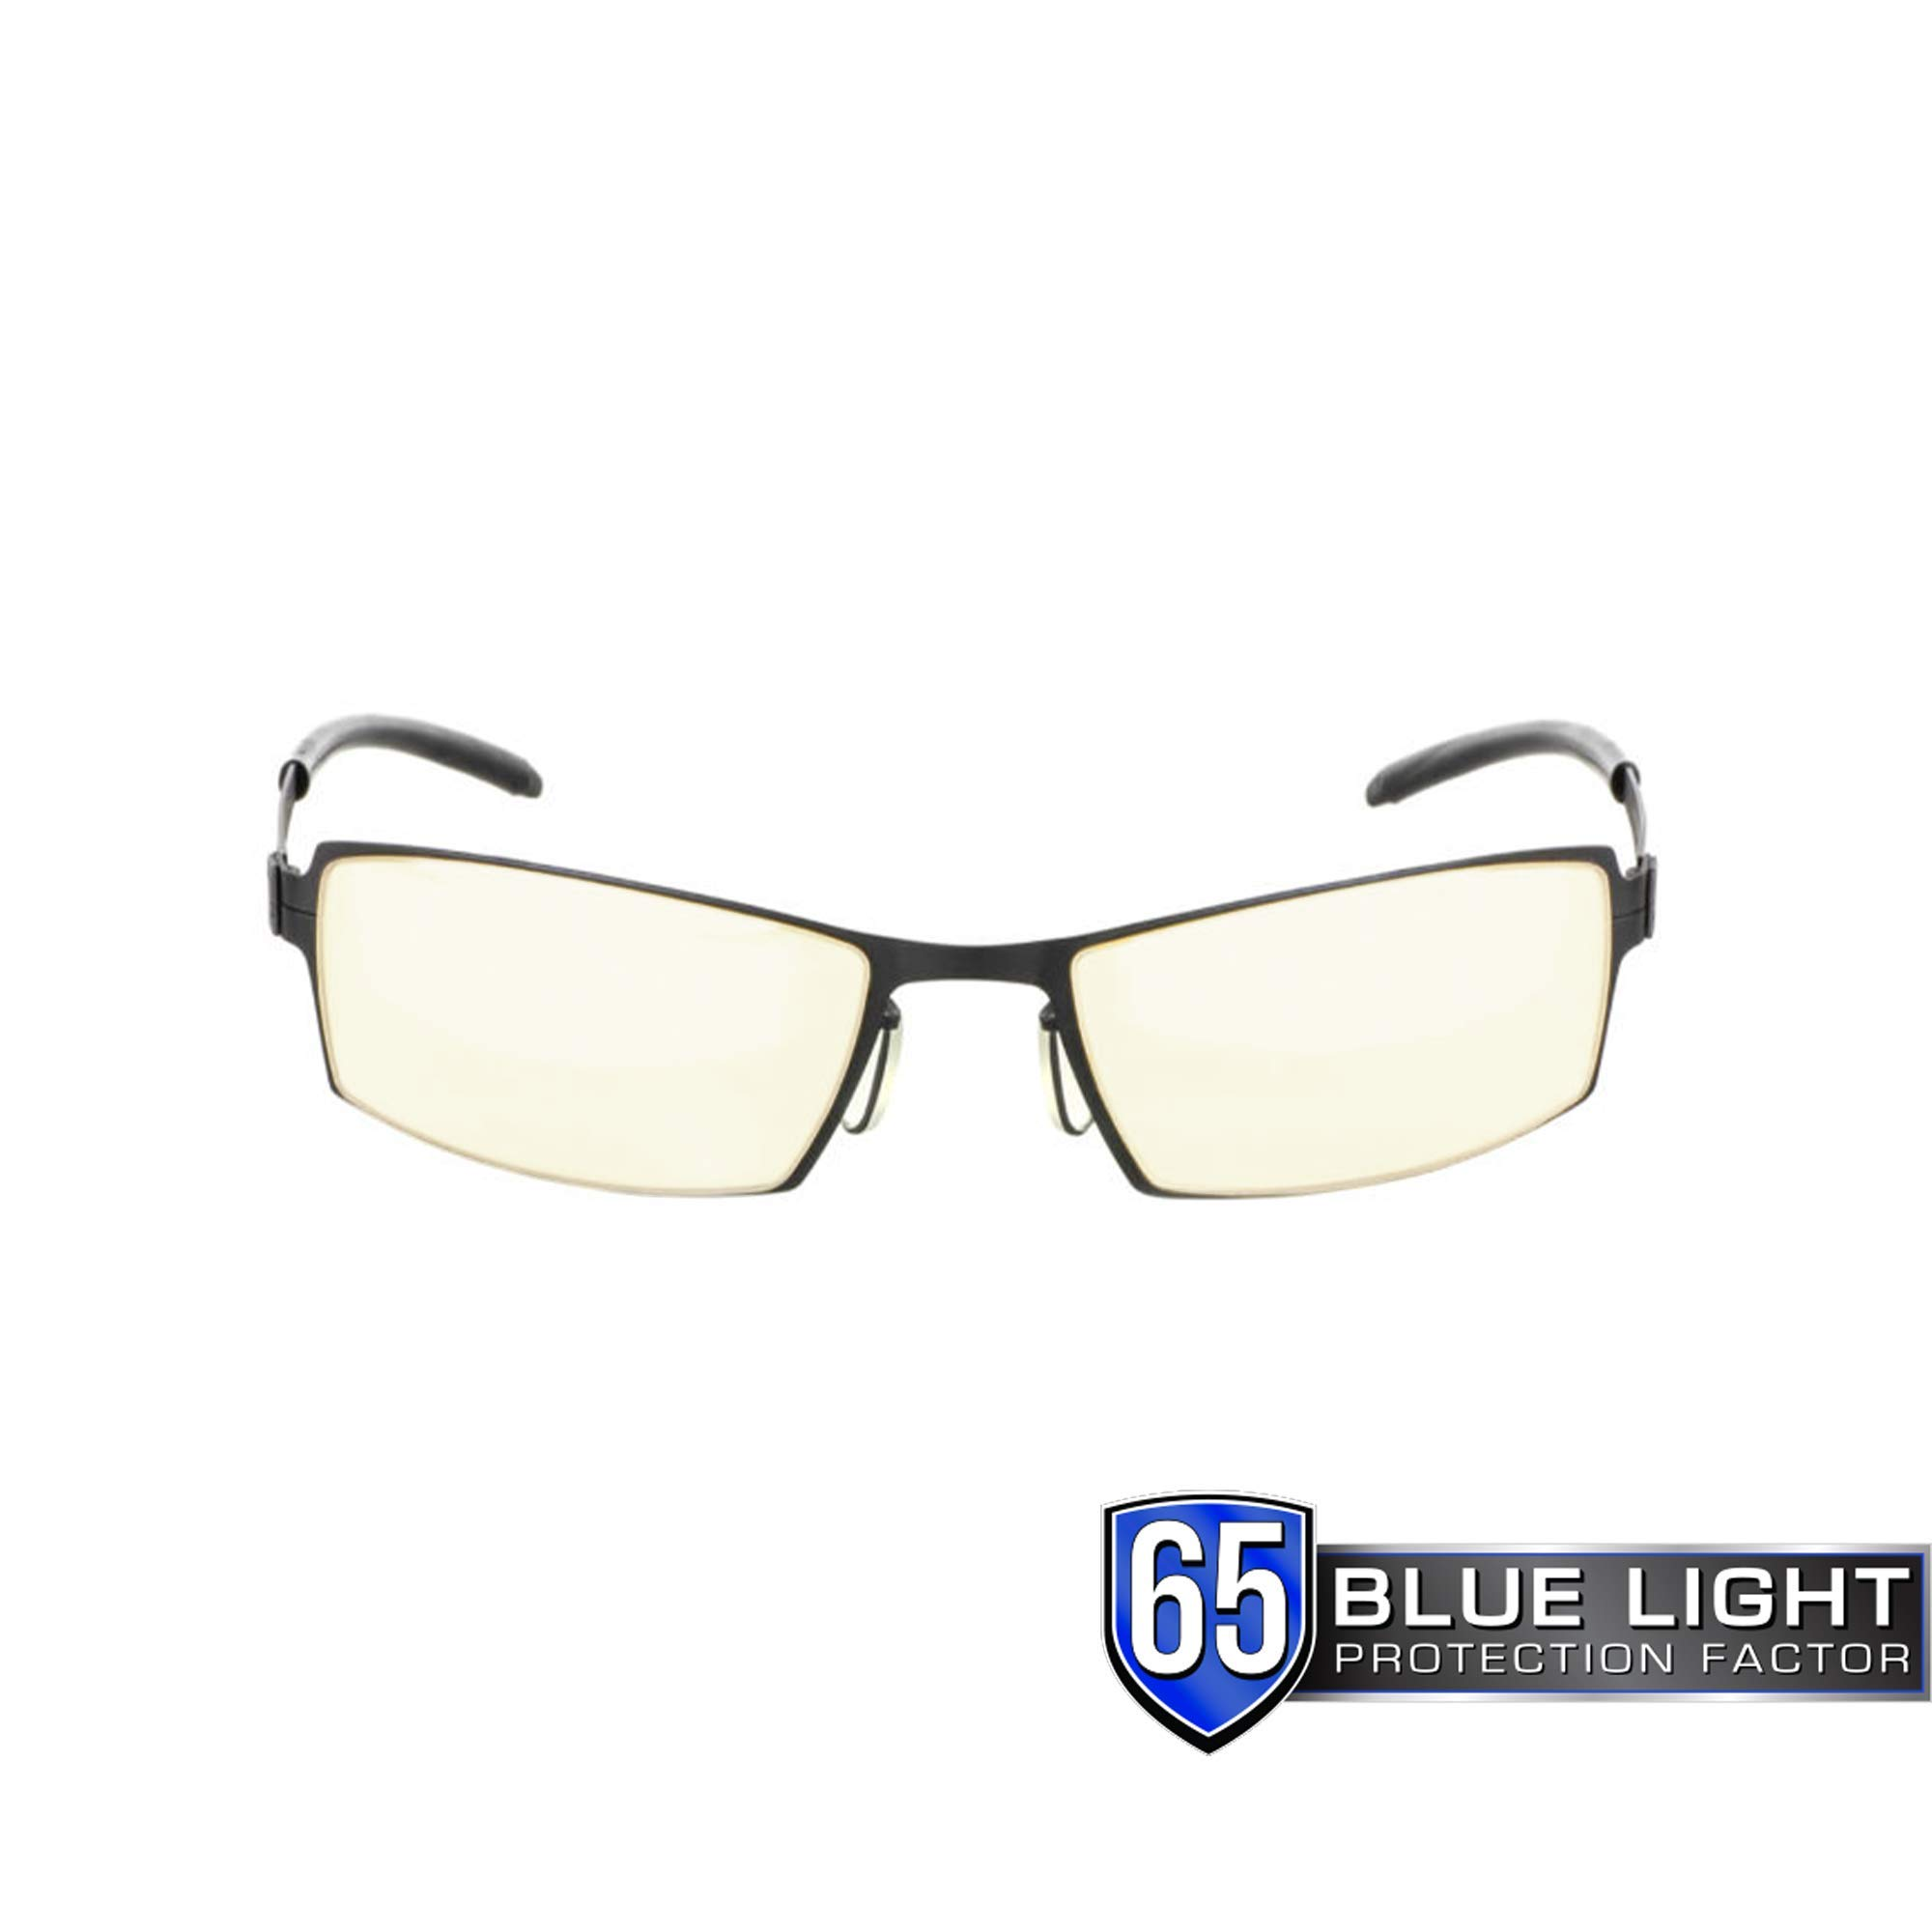 GUNNAR Gaming and Computer Eyewear /Sheadog, Amber Tint - Patented Lens, Reduce Digital Eye Strain, Block 65% of Harmful Blue Light